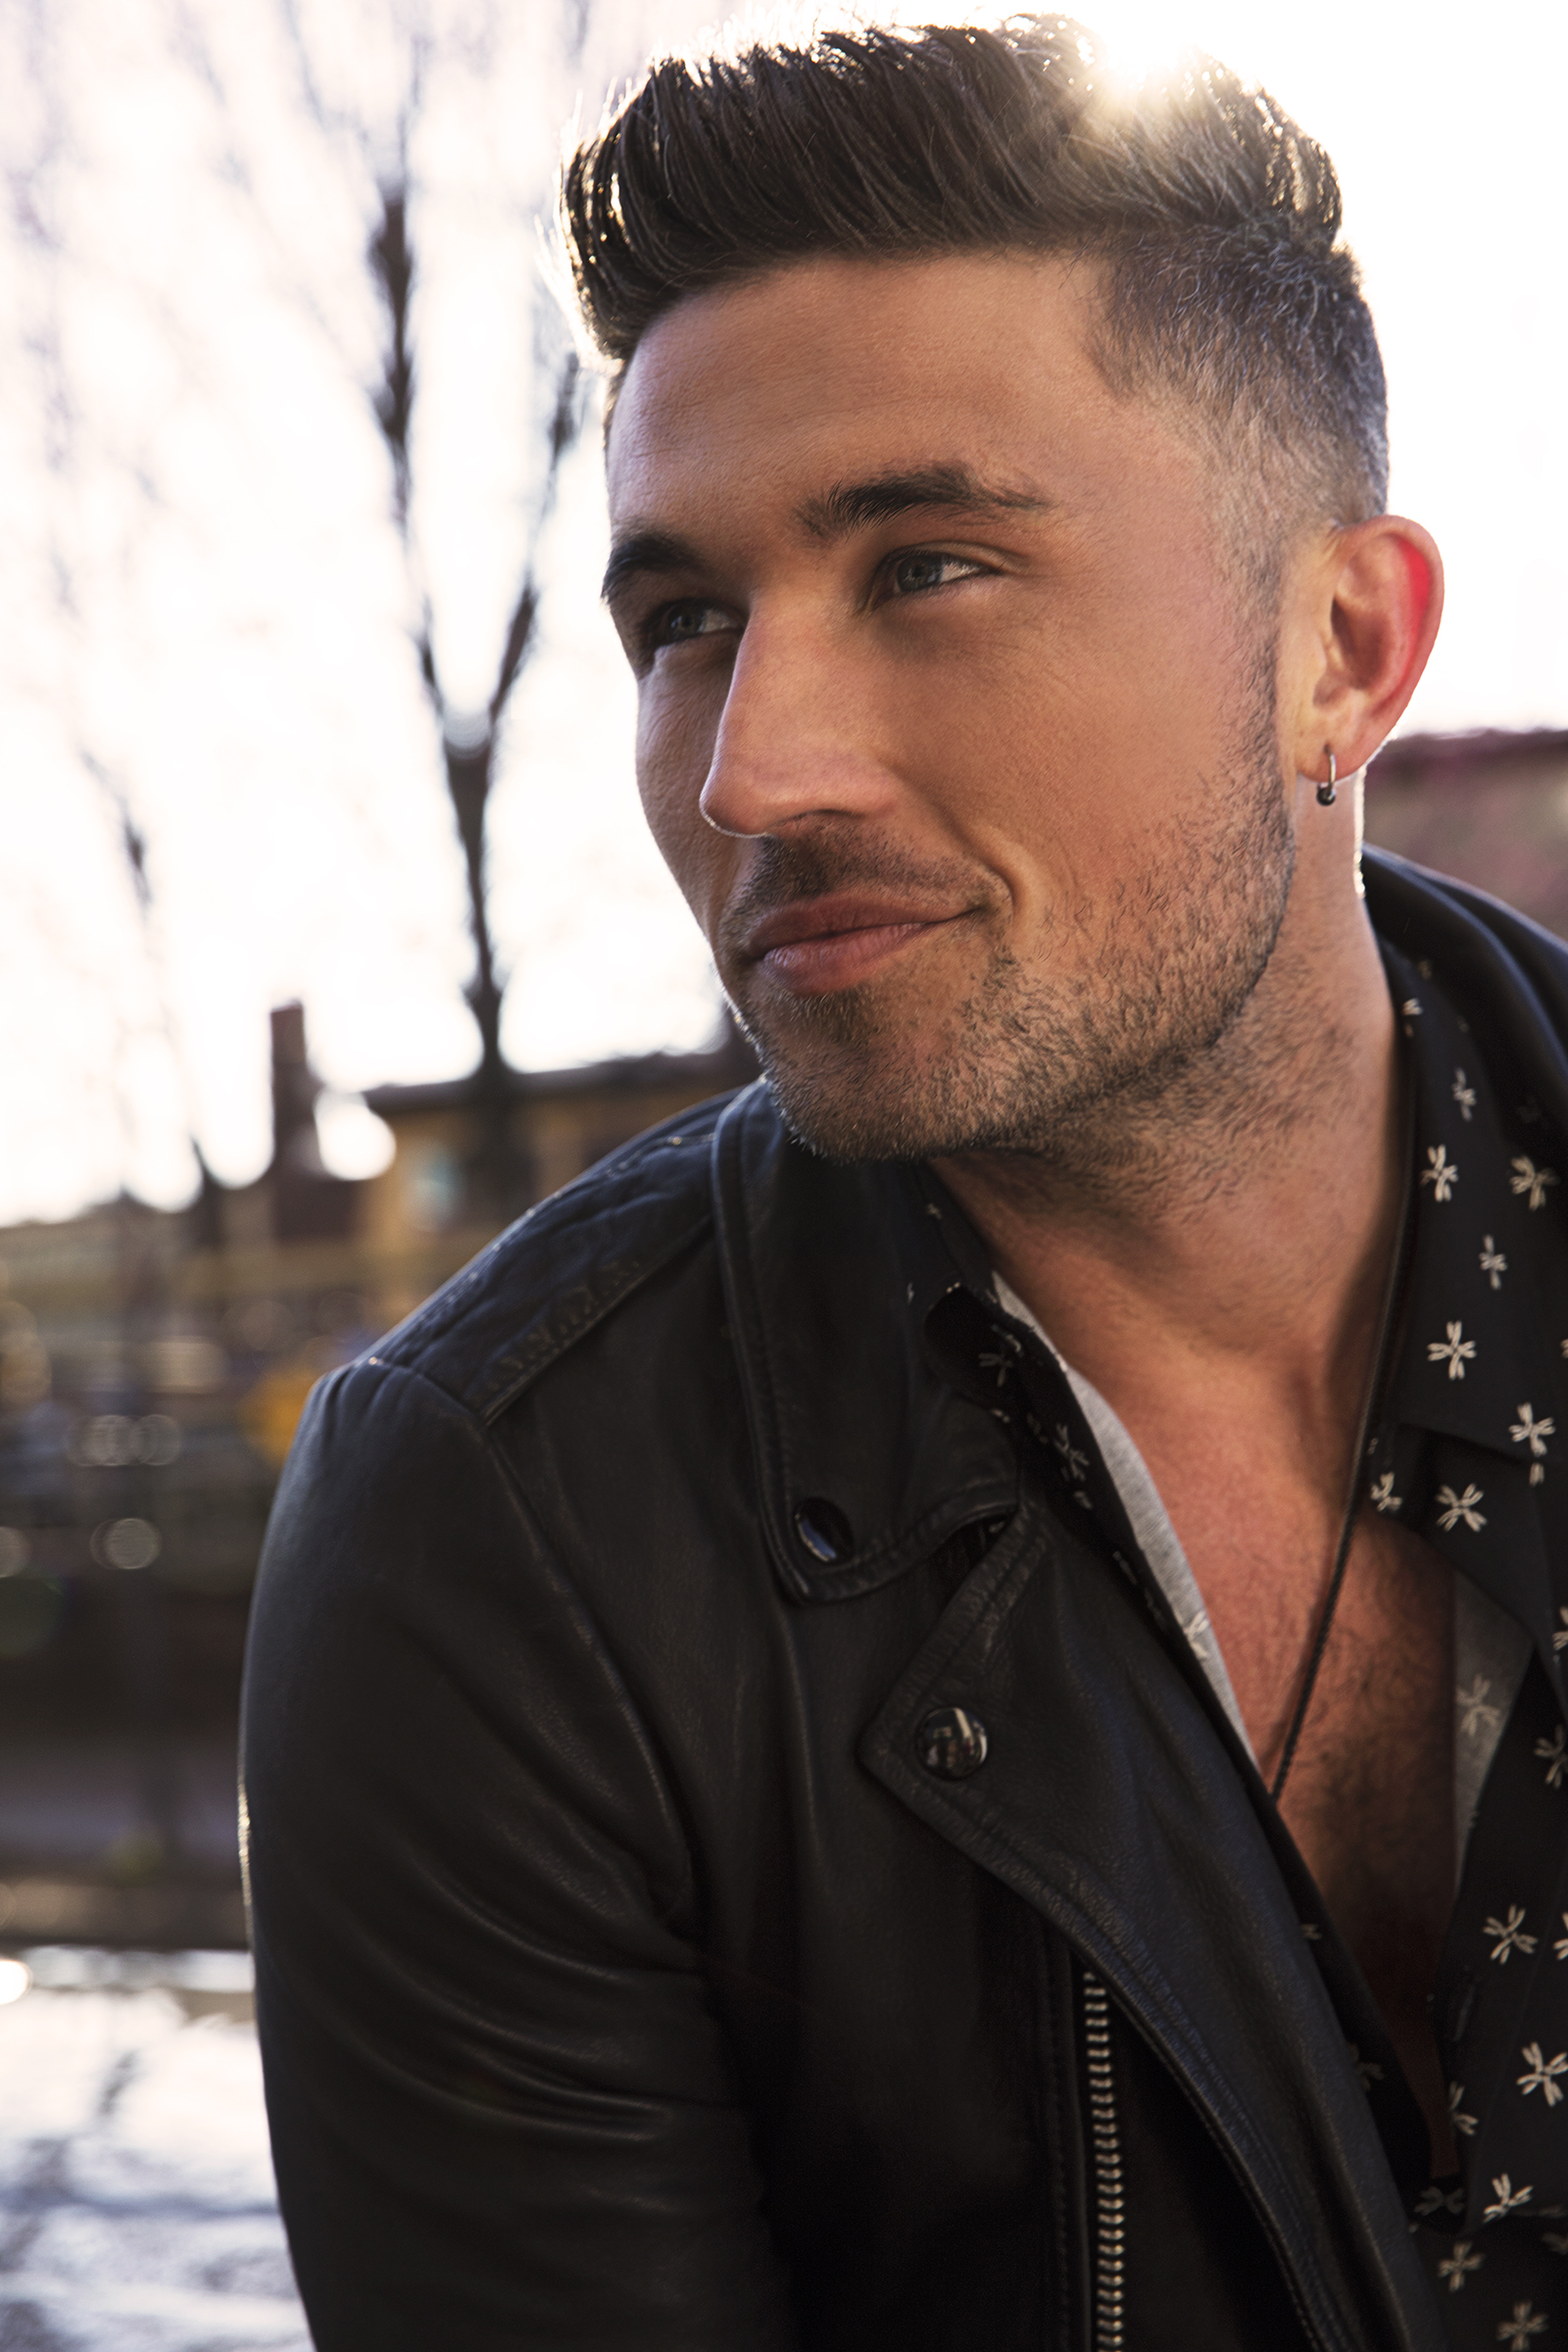 Eustis-born country singer-songwriter Michael Ray. Photo credit: Jeff Nelson.